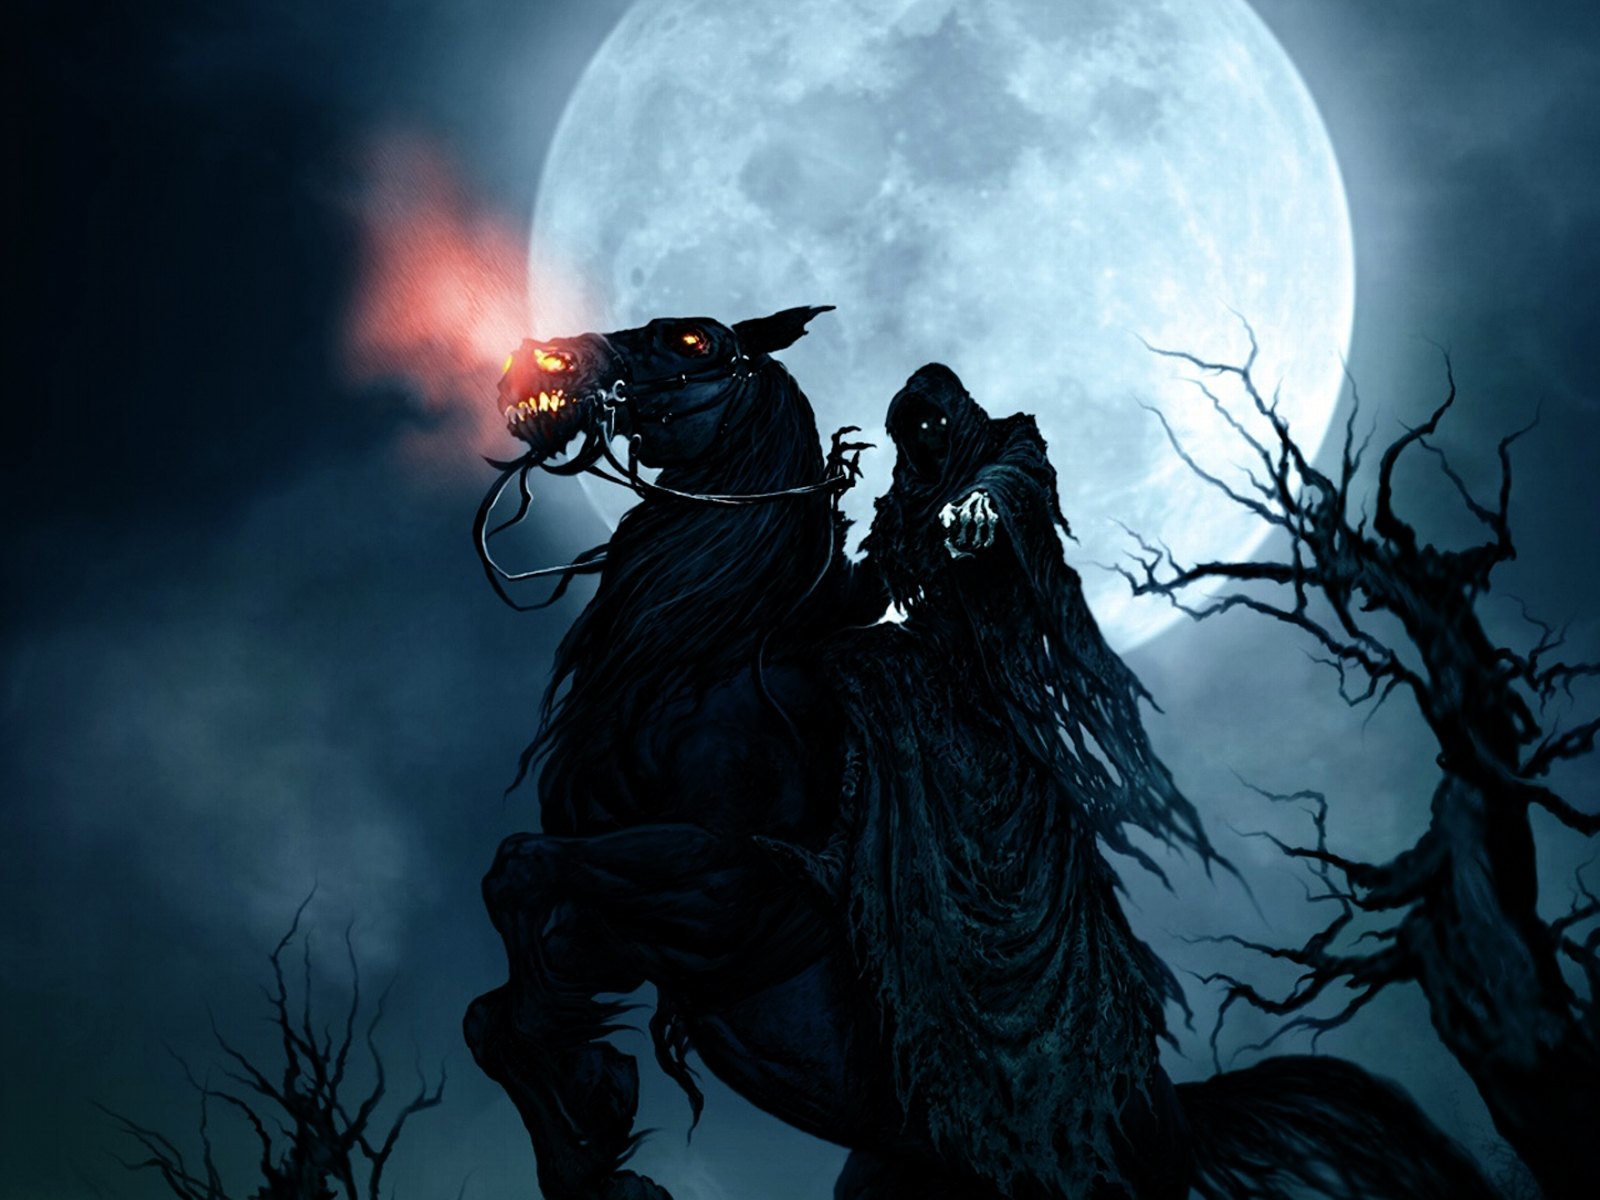 Most Inspiring   Wallpaper Horse Halloween - Death_Halloween_Knight_Skeleton_Wallpaper_Vvallpaper  Snapshot_266869.jpg